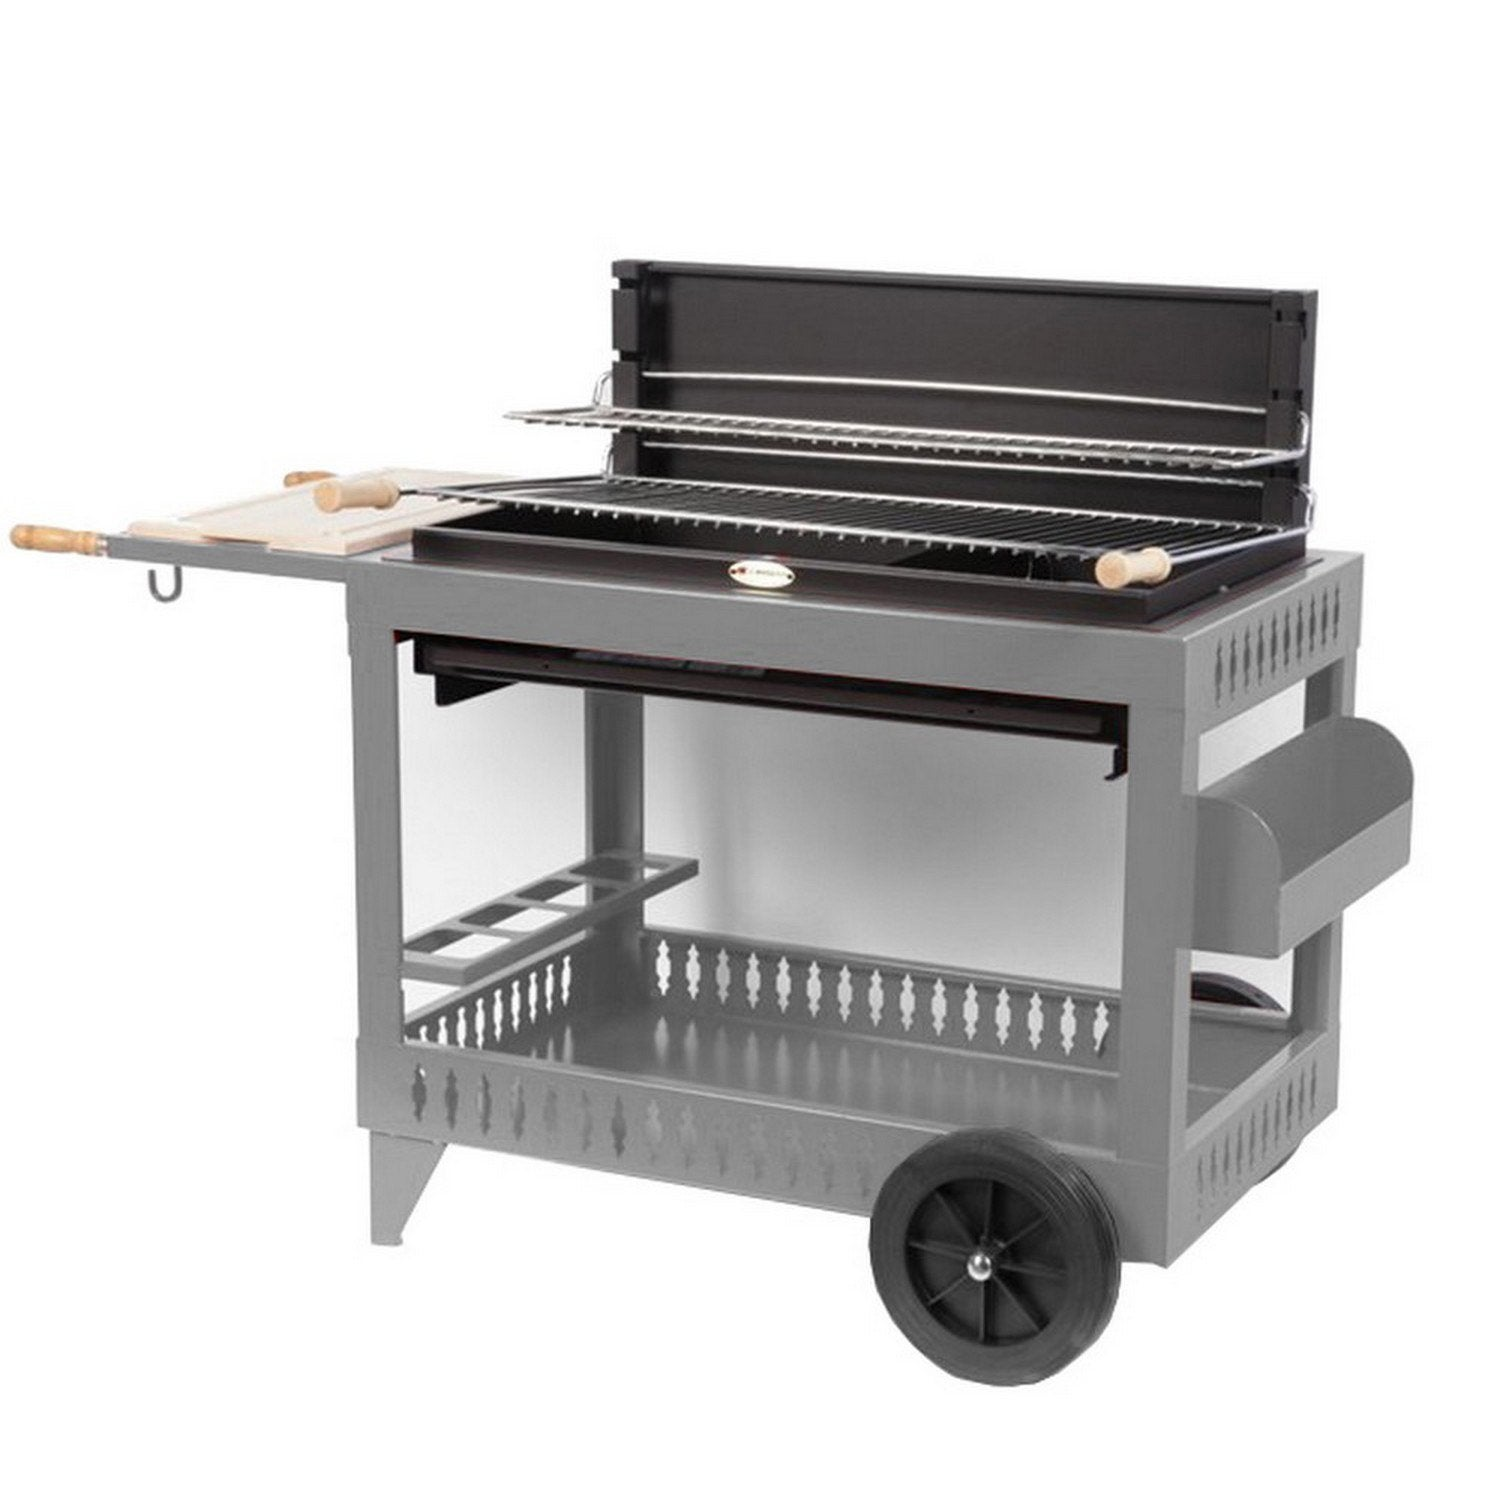 Barbecue au charbon de bois lemarquier iholdy gris leroy for Barbecue le roy merlin